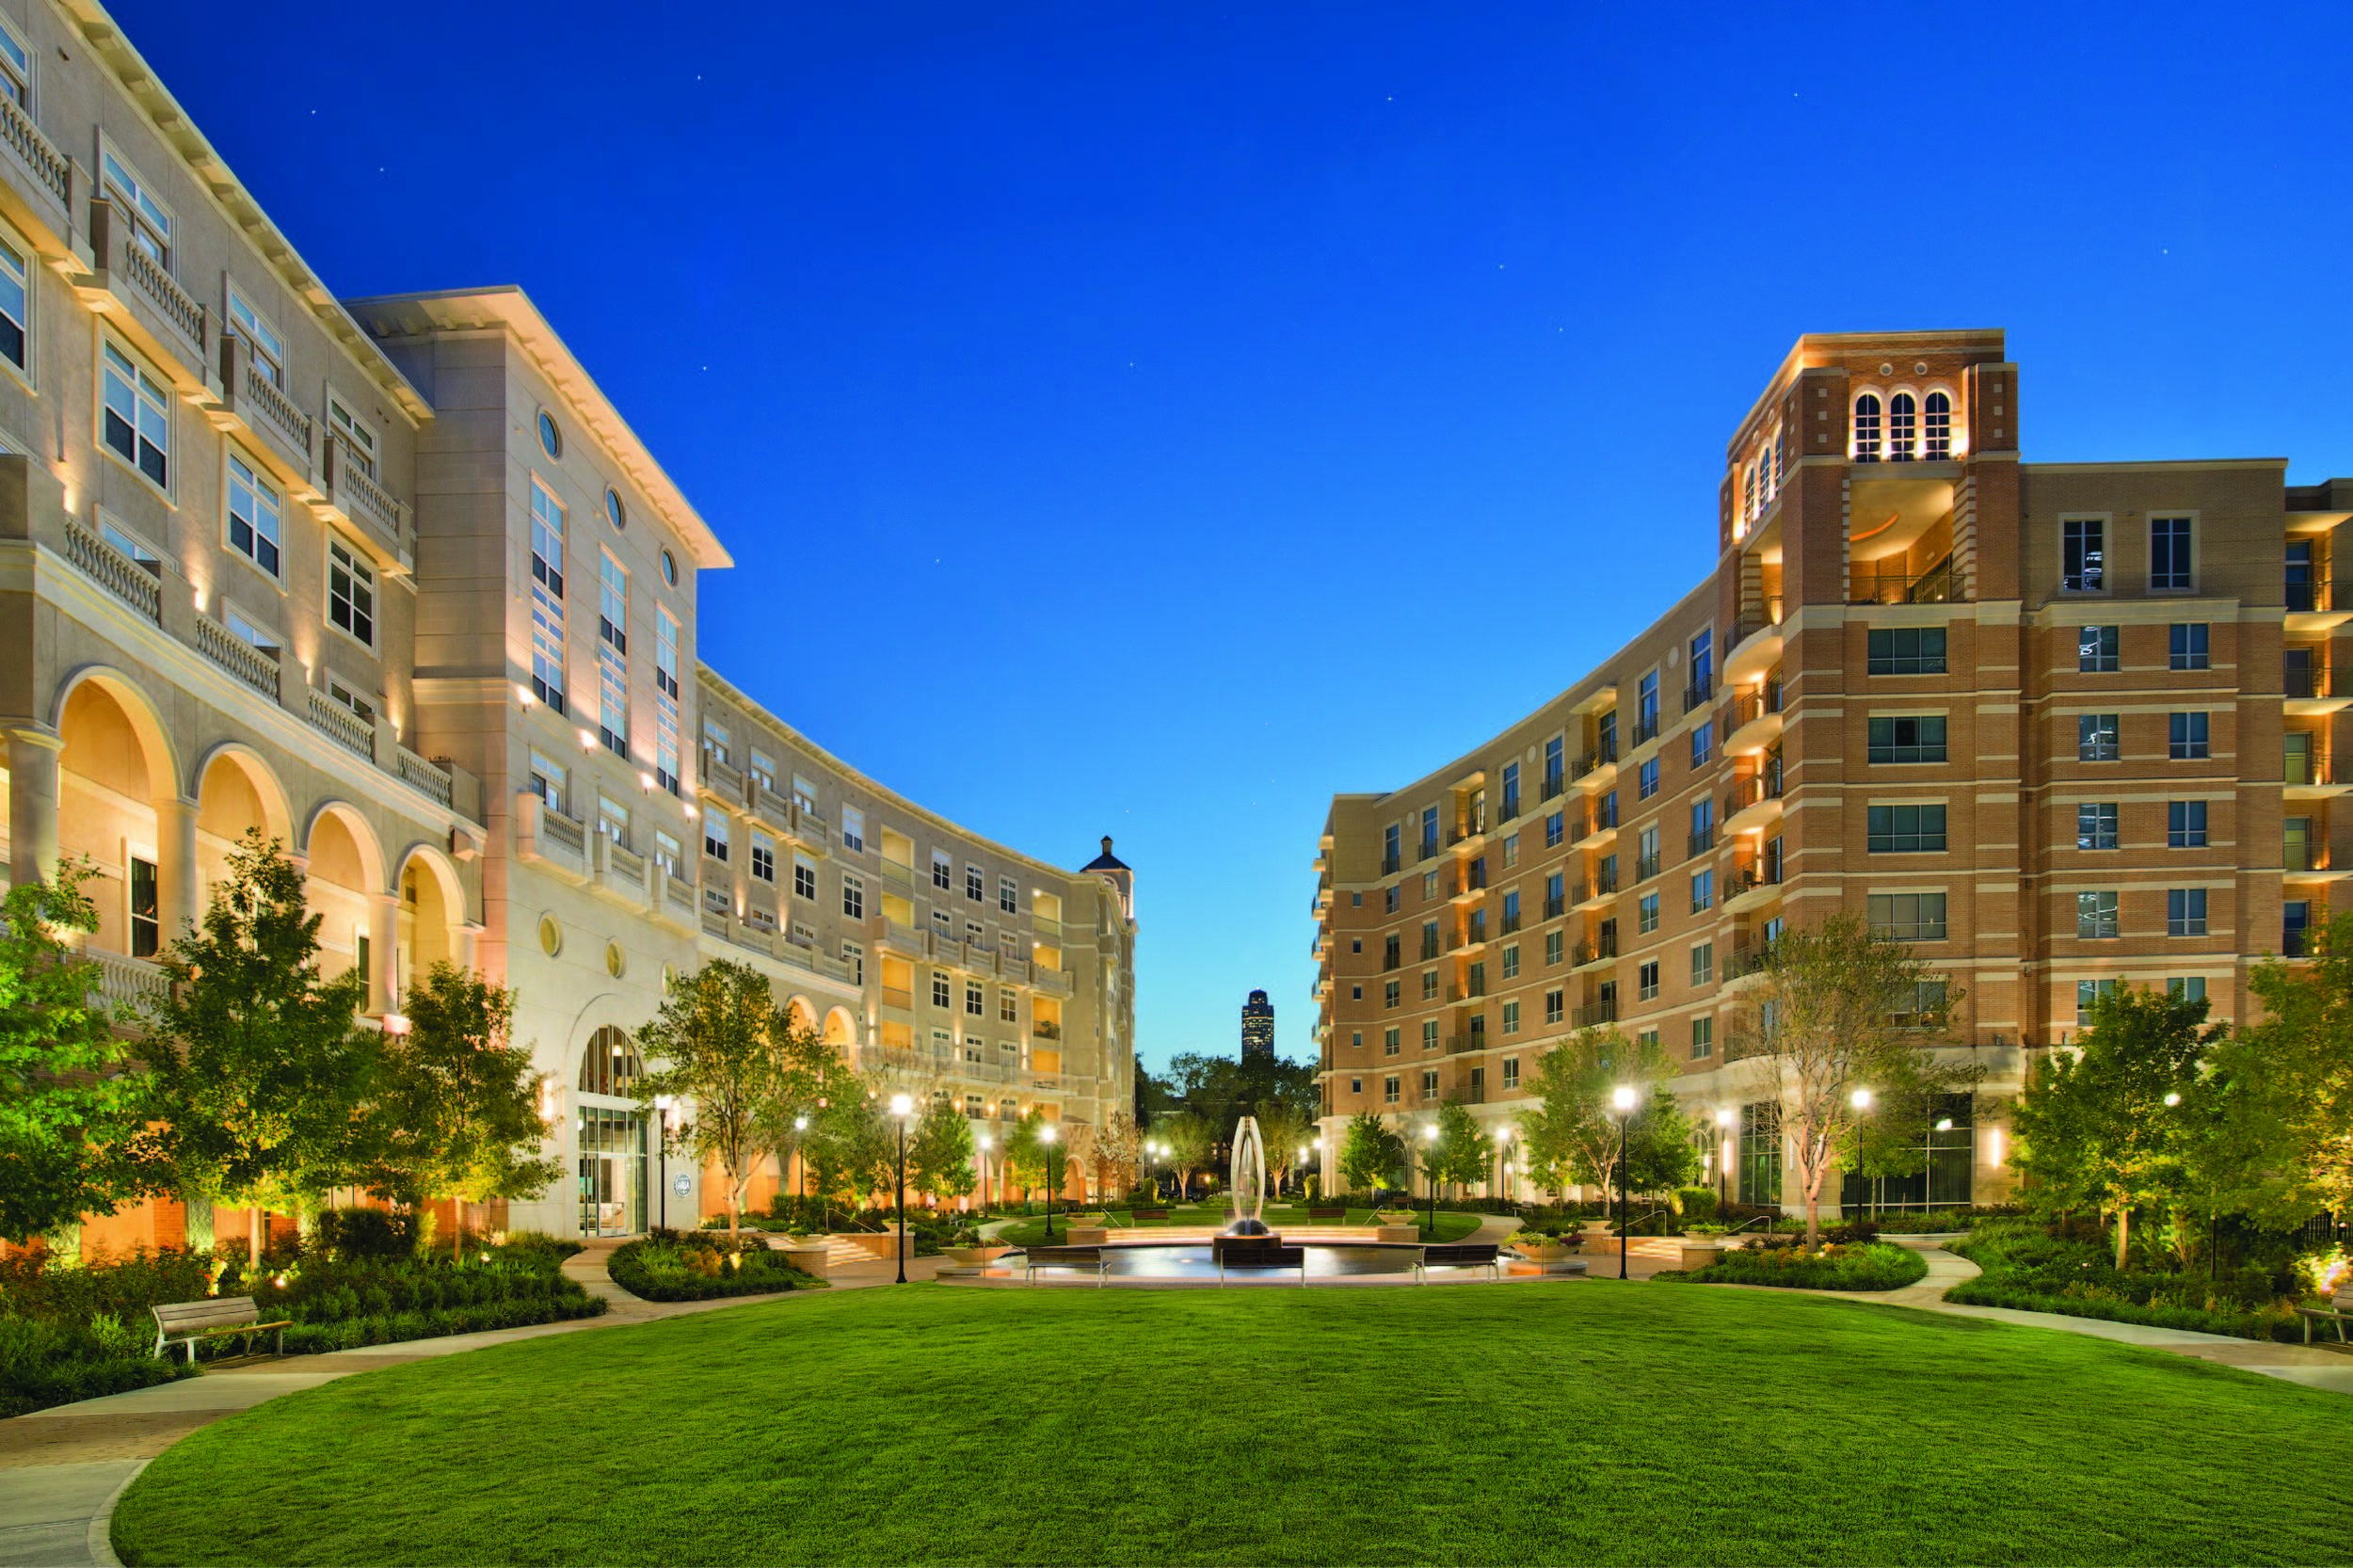 RESIDENTIAL -Multifamily - Click to view multifamily residential projects.